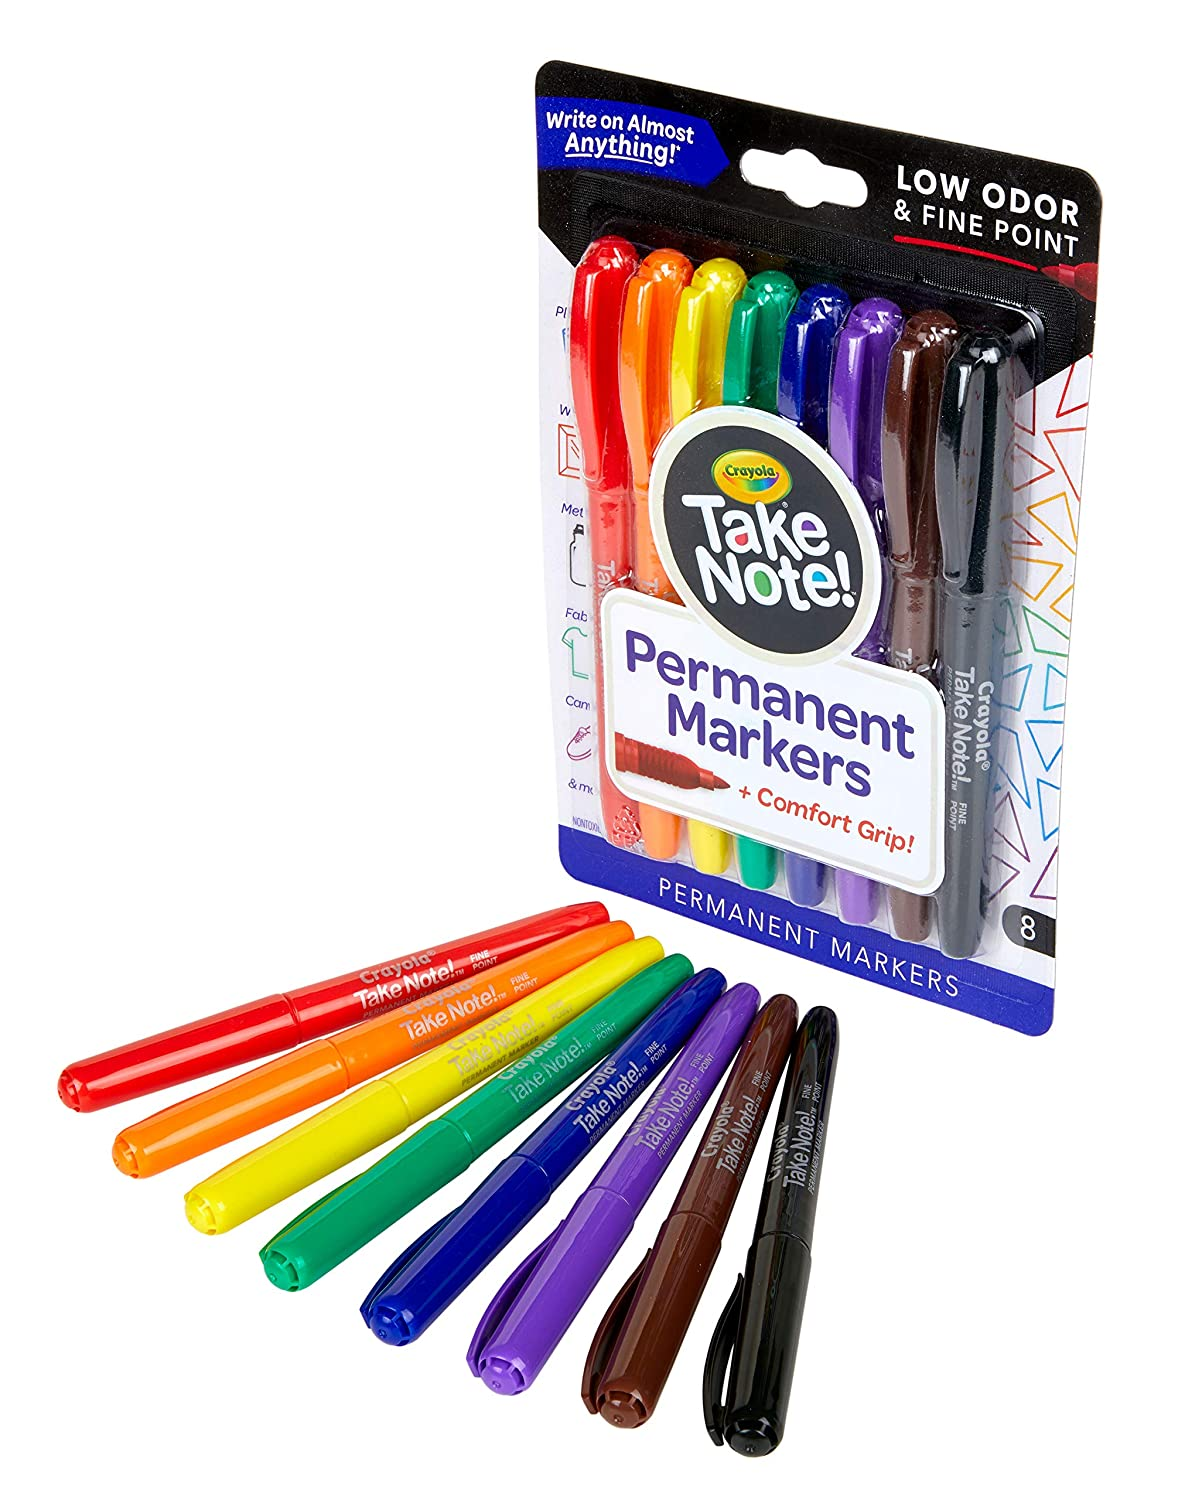 Crayola Take Note Permanent Markers, Fine Point, Assorted Colors, School Supplies, 8 Count